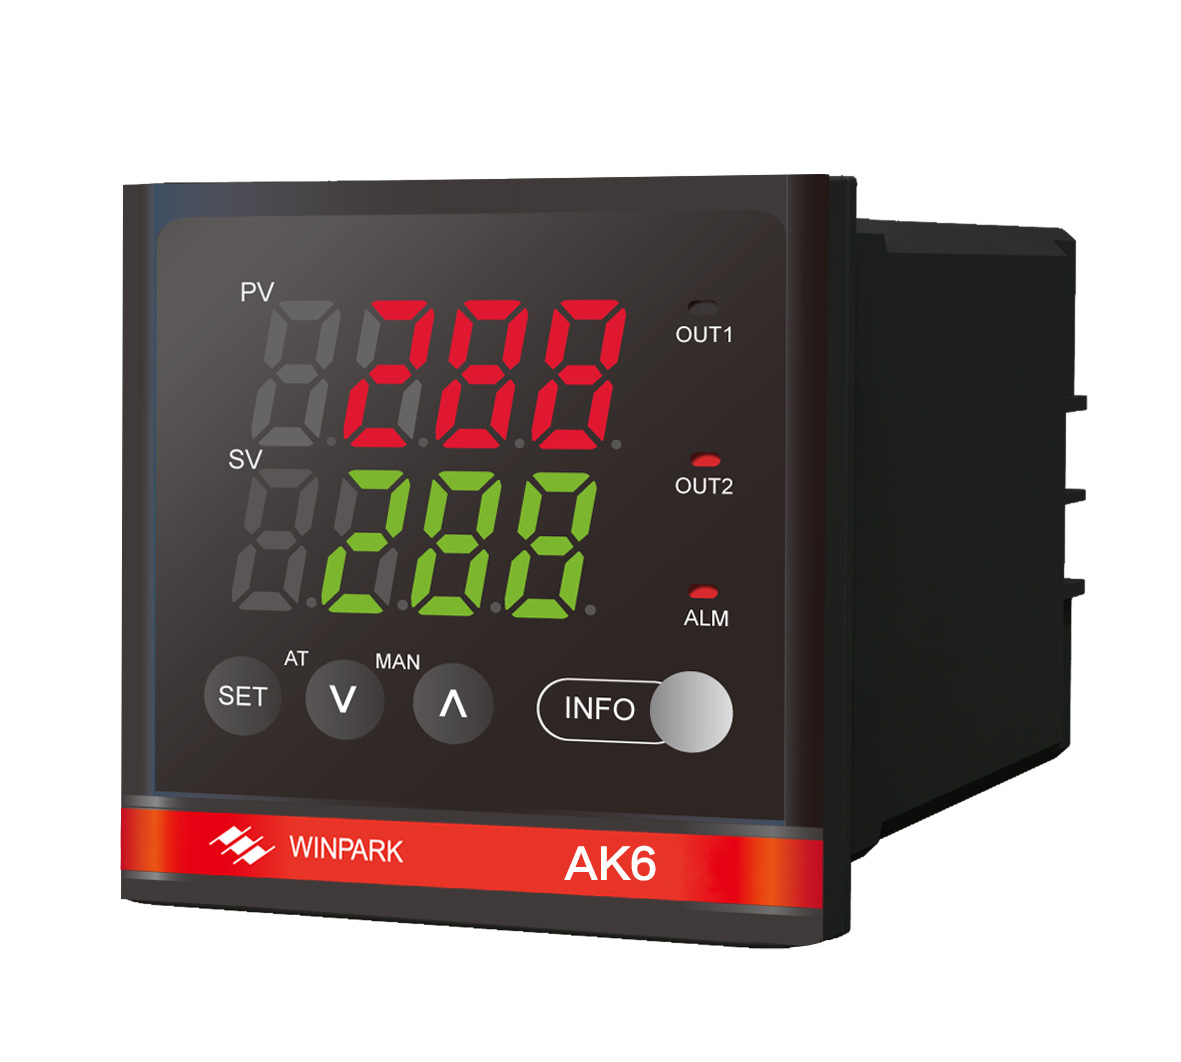 extruder temperature controller Winpark AK6-AKL110 smart home plc (sincerely looking for cooperation)